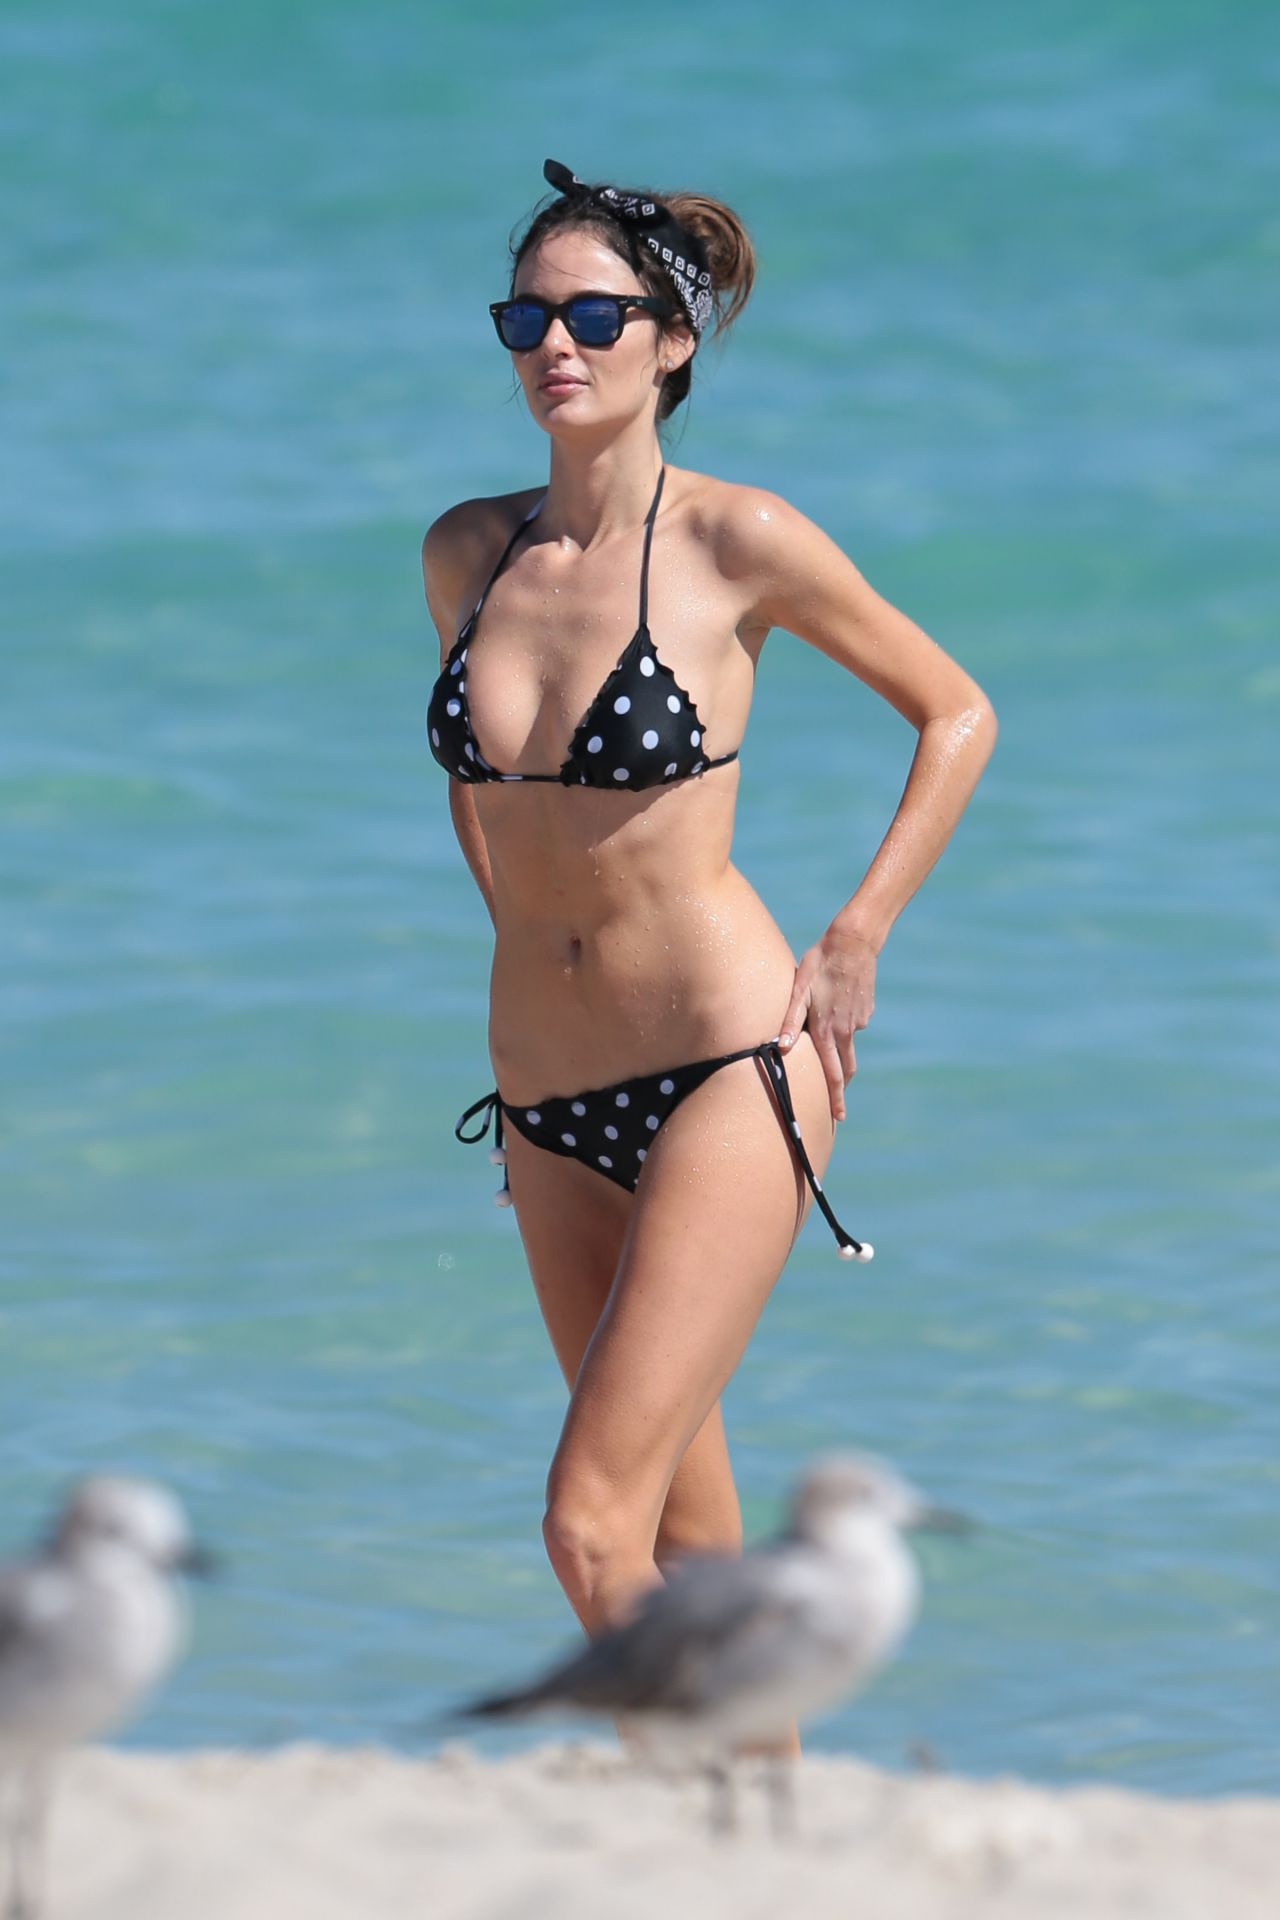 Nicole Trunfio in Polka Dot Bikini - Beach in Miami, February 2014